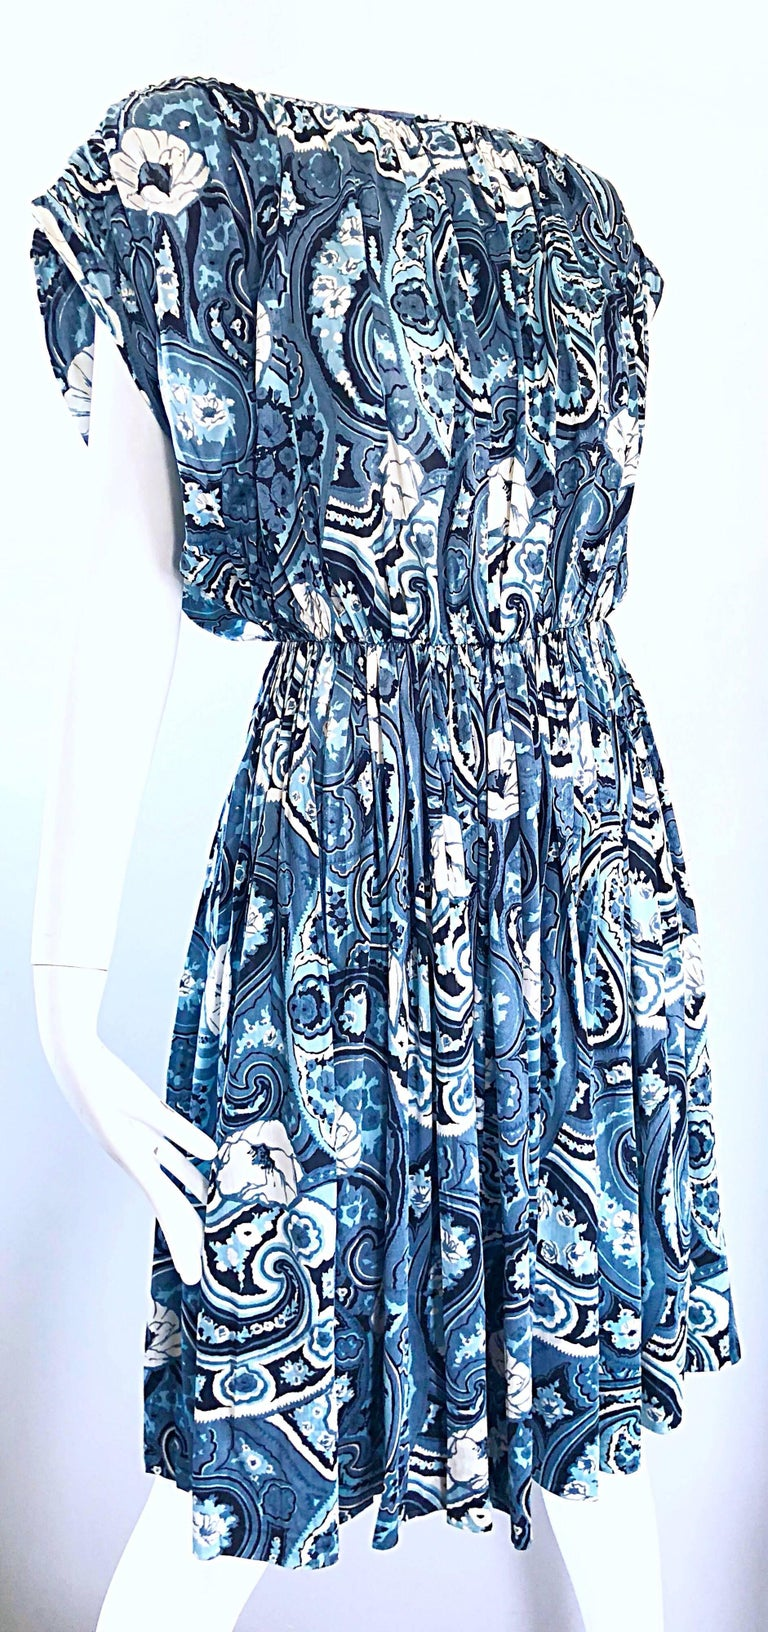 Rare 1950s Townley Blue + White Paisley Flower Print Vintage 50s Dress In Excellent Condition For Sale In Chicago, IL